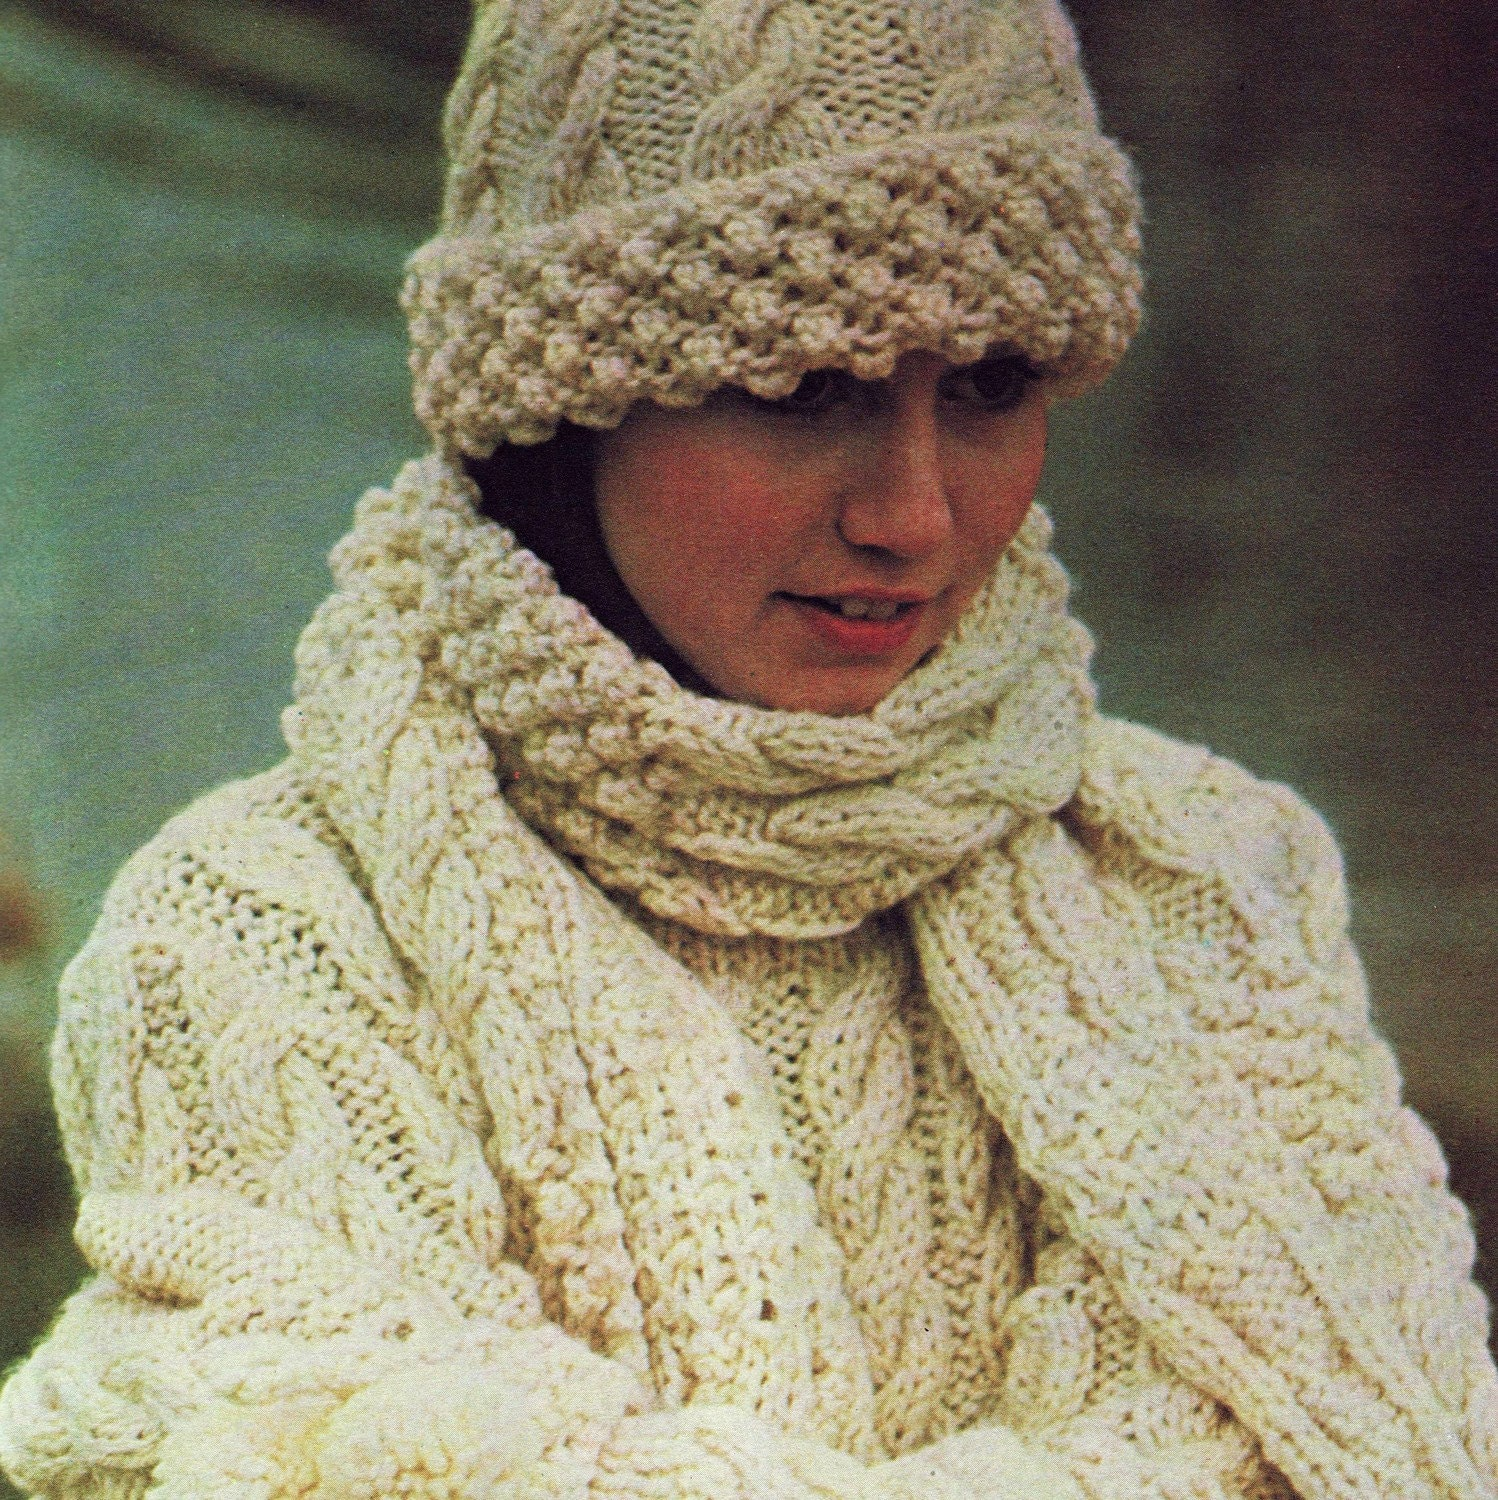 Knitting Patterns Hats : HAT SCARF KNITTING PATTERNS   Free Patterns